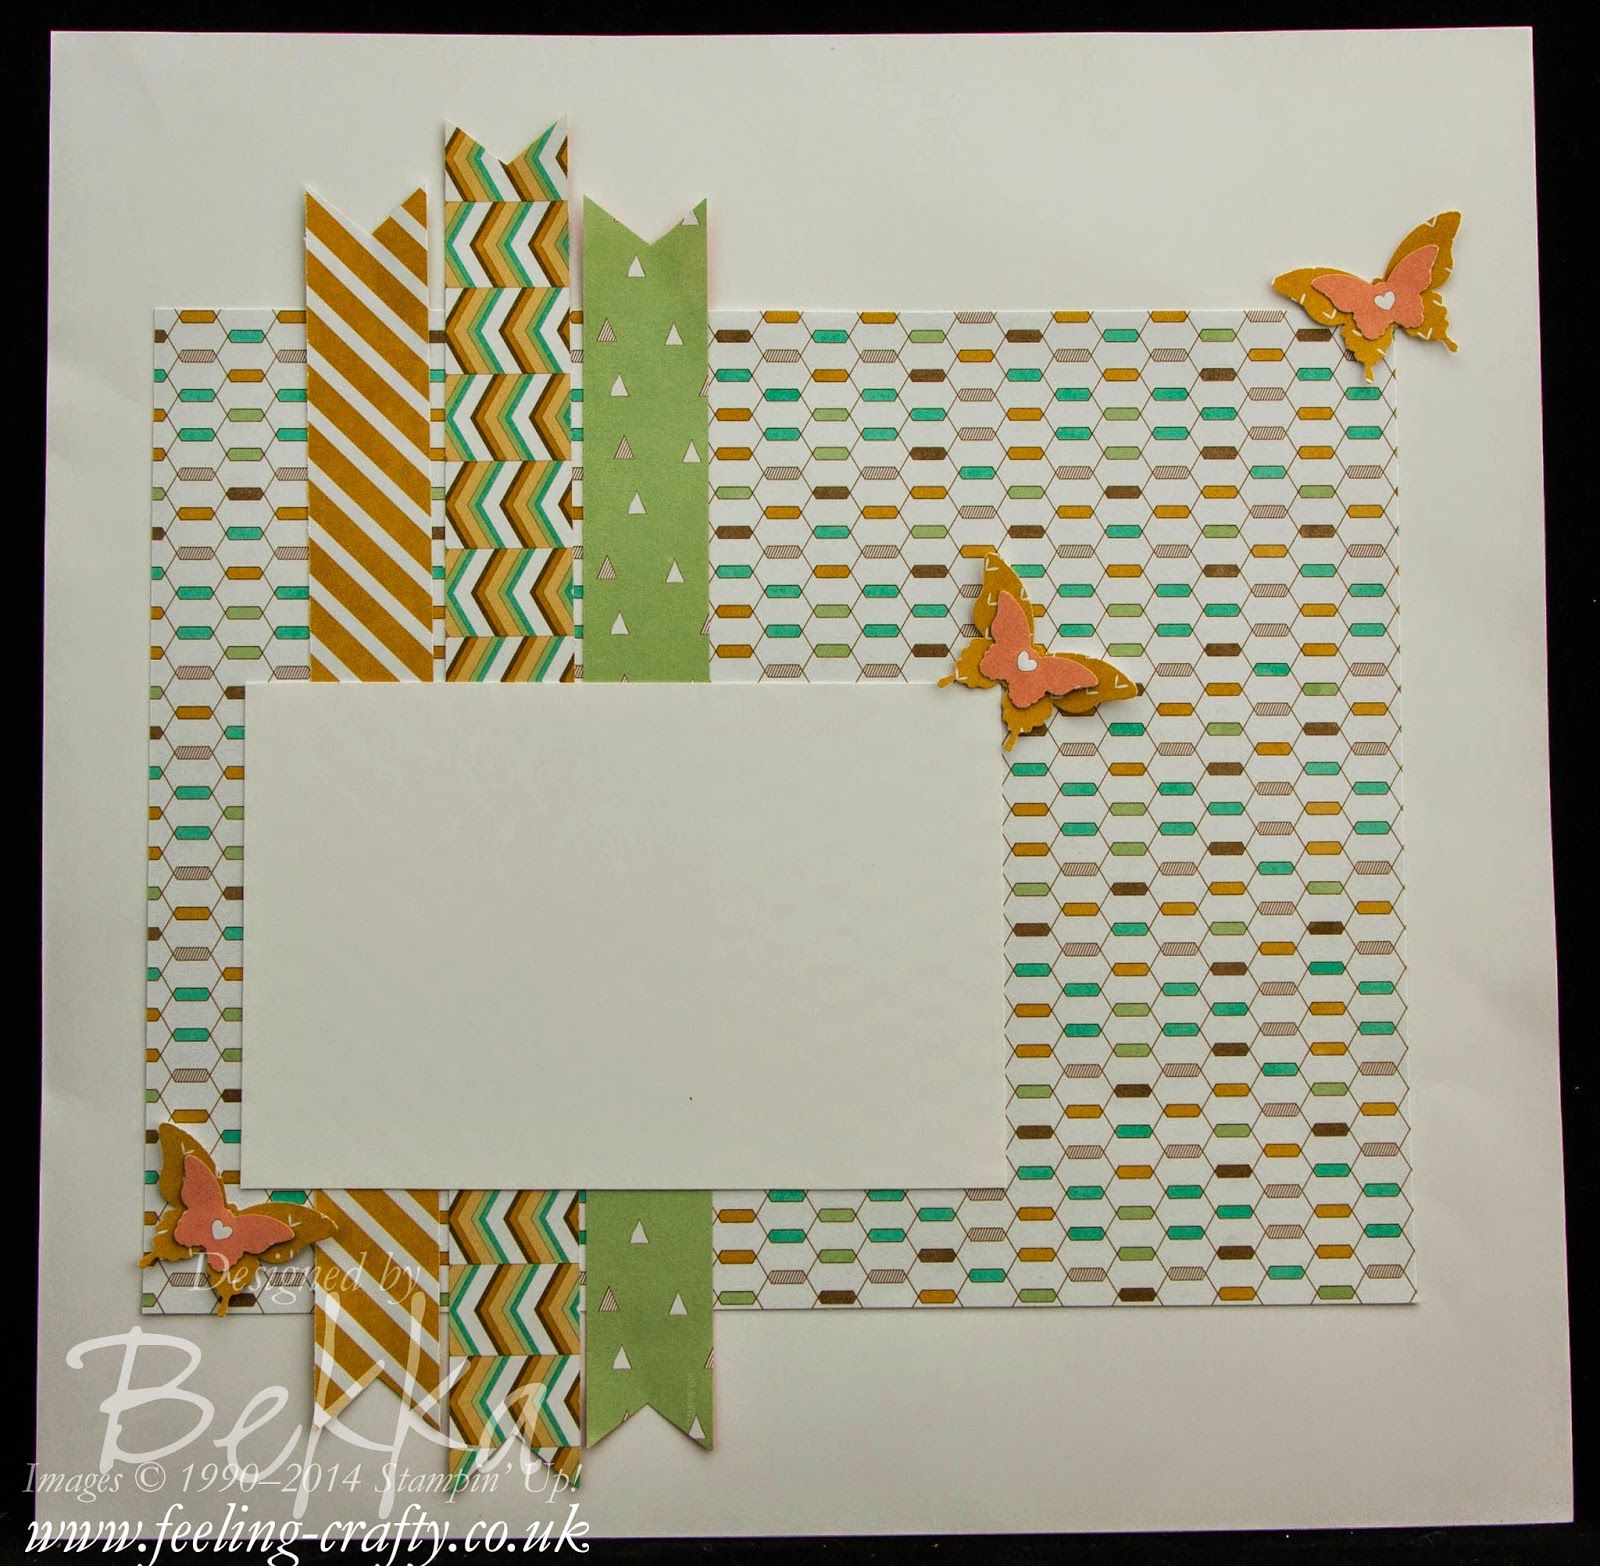 How to scrapbook uk - Scrapbook Start Point Page Featuring The Lullaby Papers From Stampin Up Uk For The